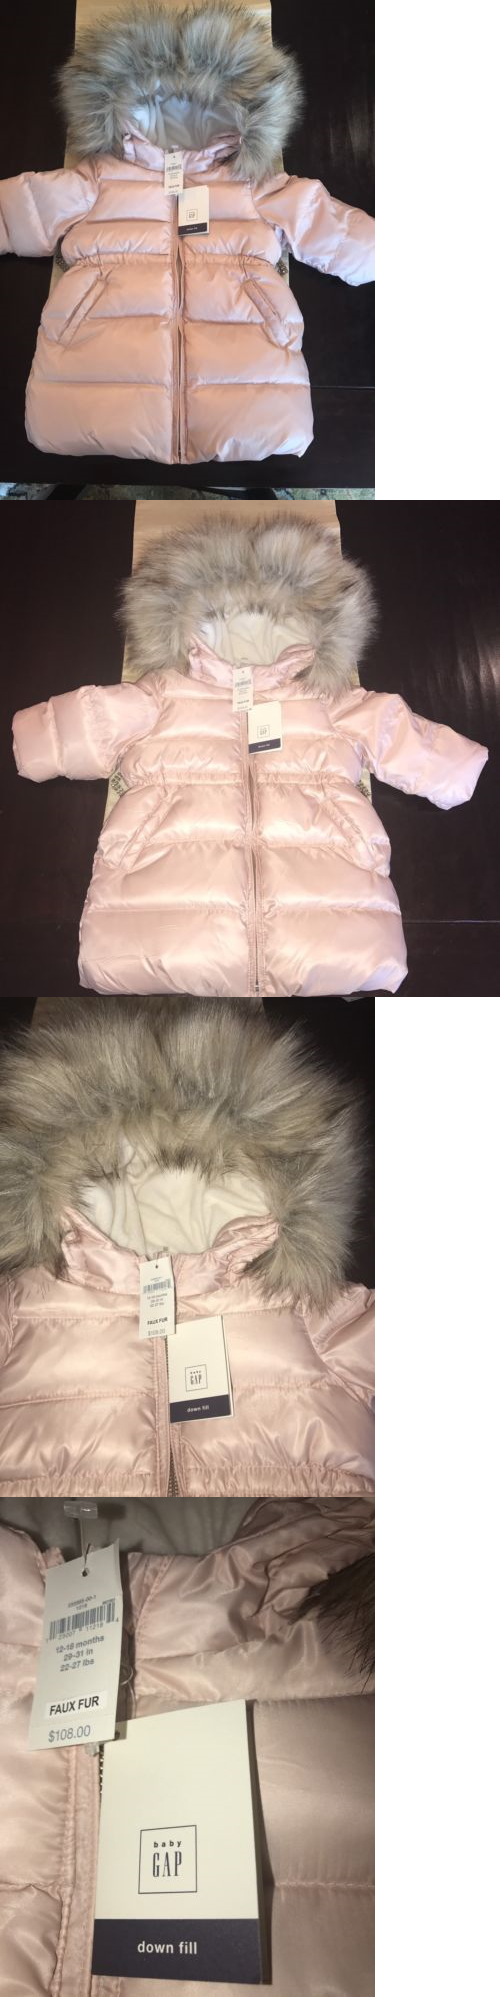 Baby & Toddler Clothing Outerwear Baby Gap Puffy Vest Girls 12-18 Months